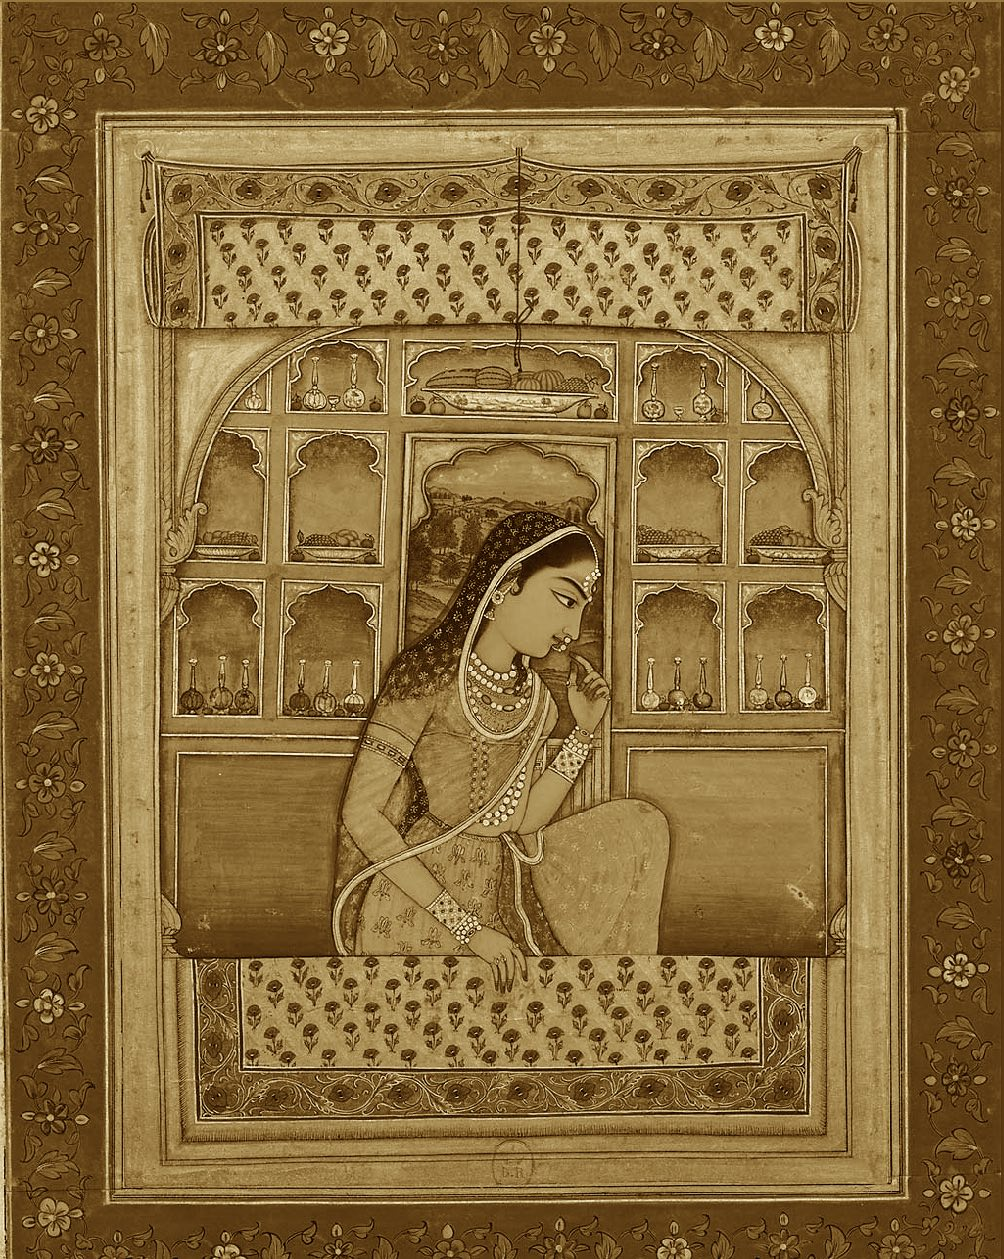 Princess Padmavati ca. 1765 Bibliothèque nationale de France, Paris